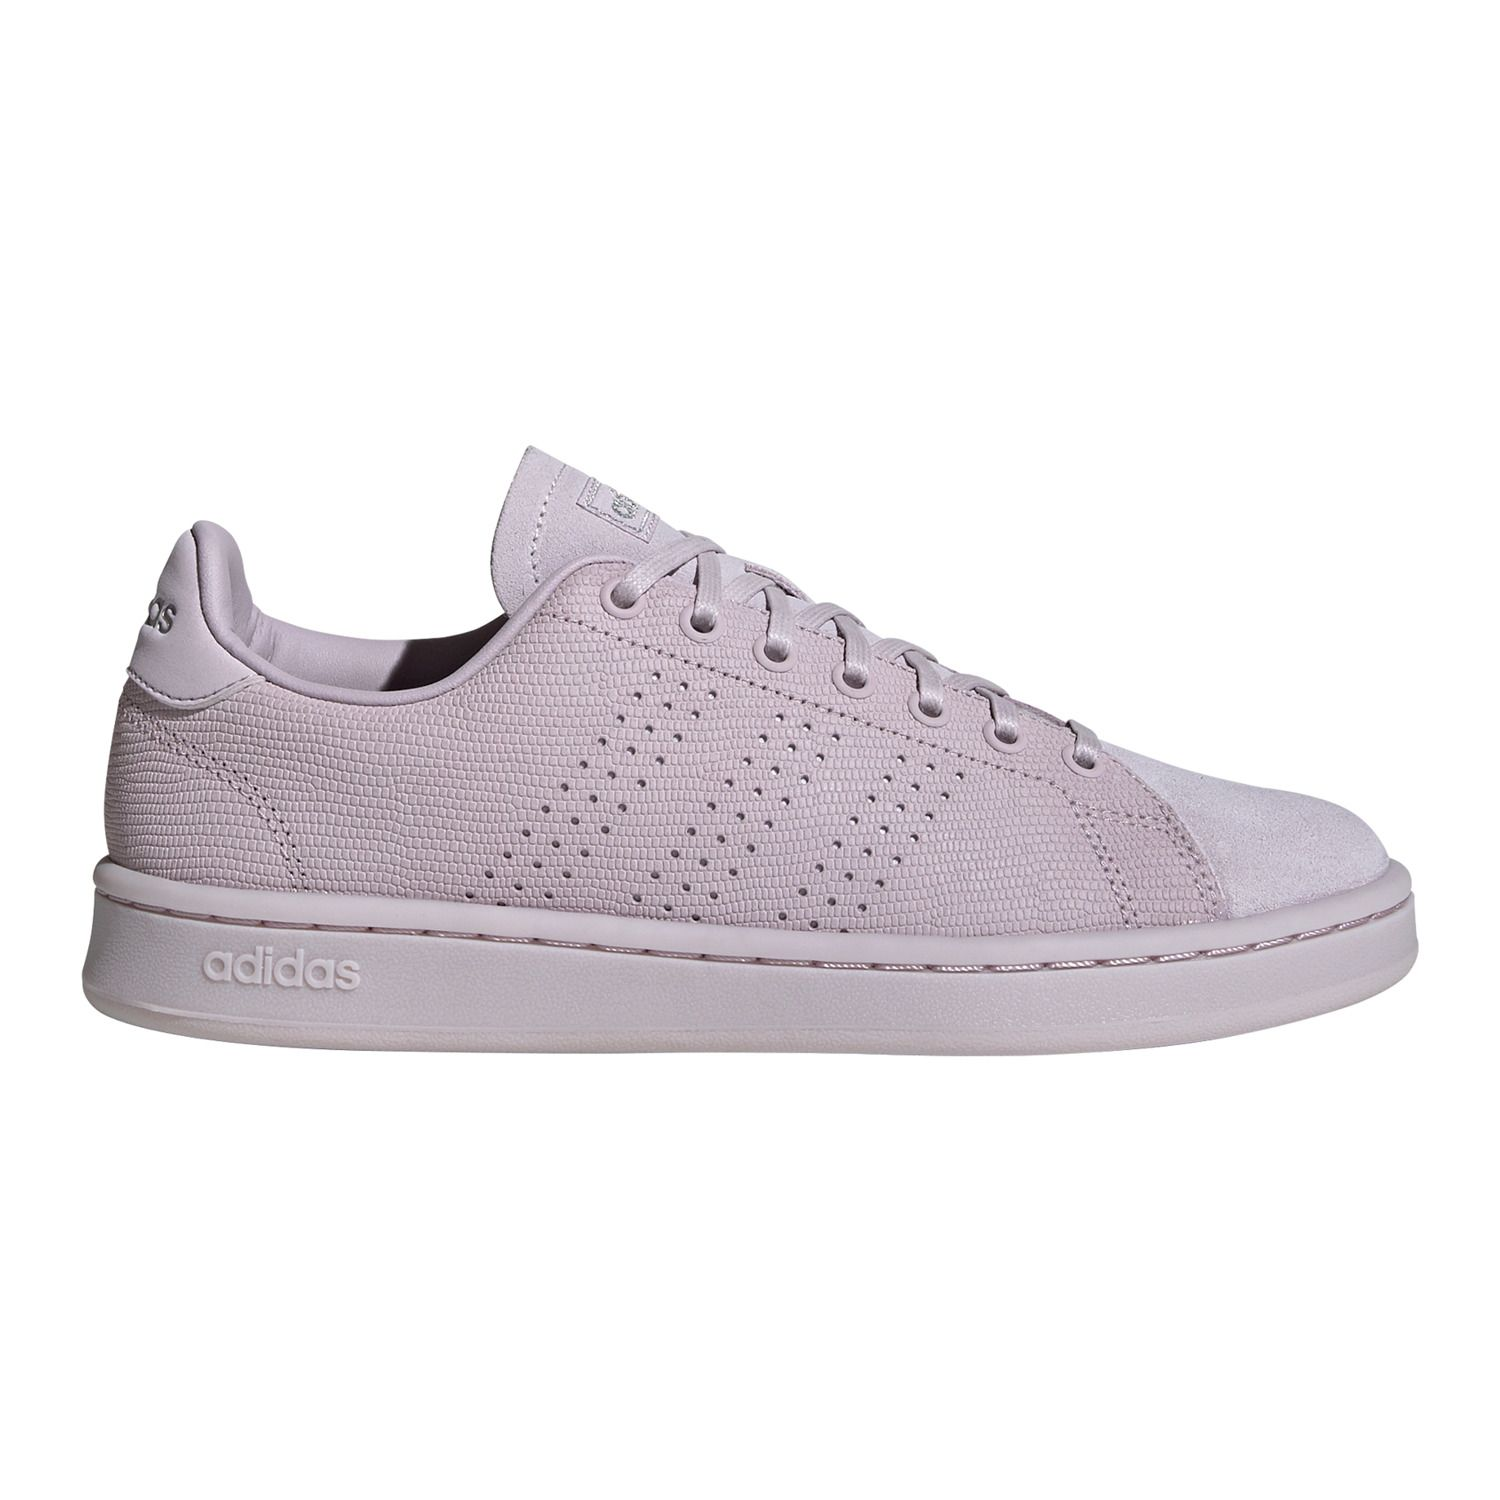 8b6ee1a1e9401 Womens adidas Shoes